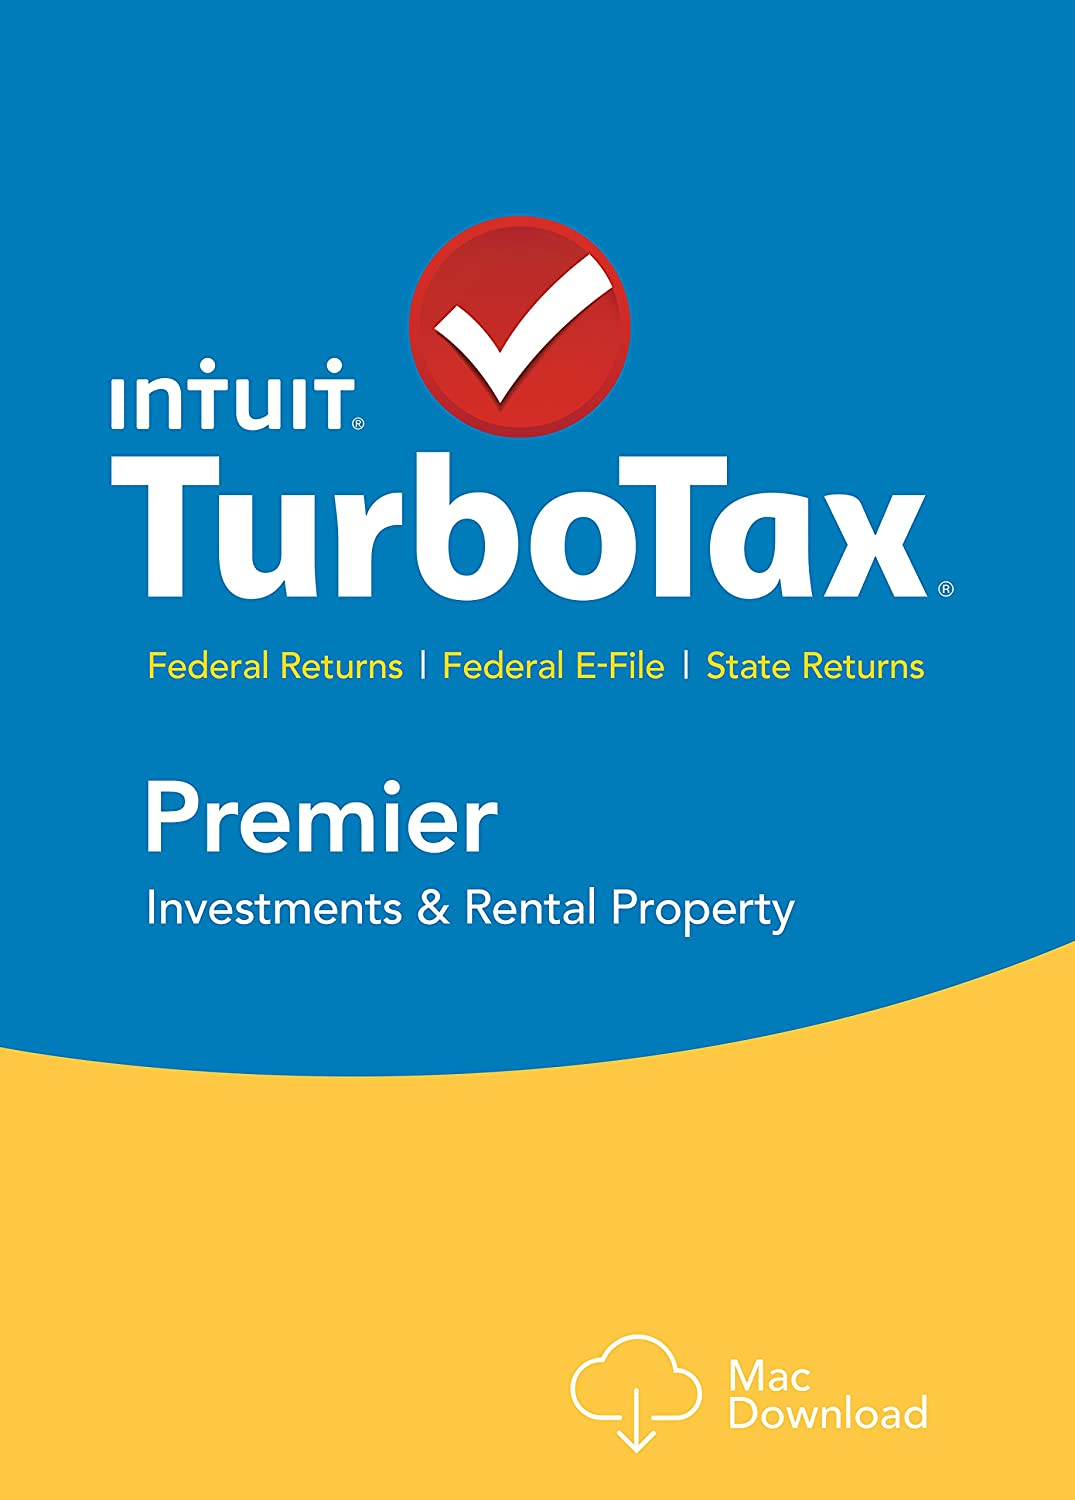 TurboTax Premier 2015 Federal + State Taxes + Fed Efile Tax Preparation Software - Mac Download